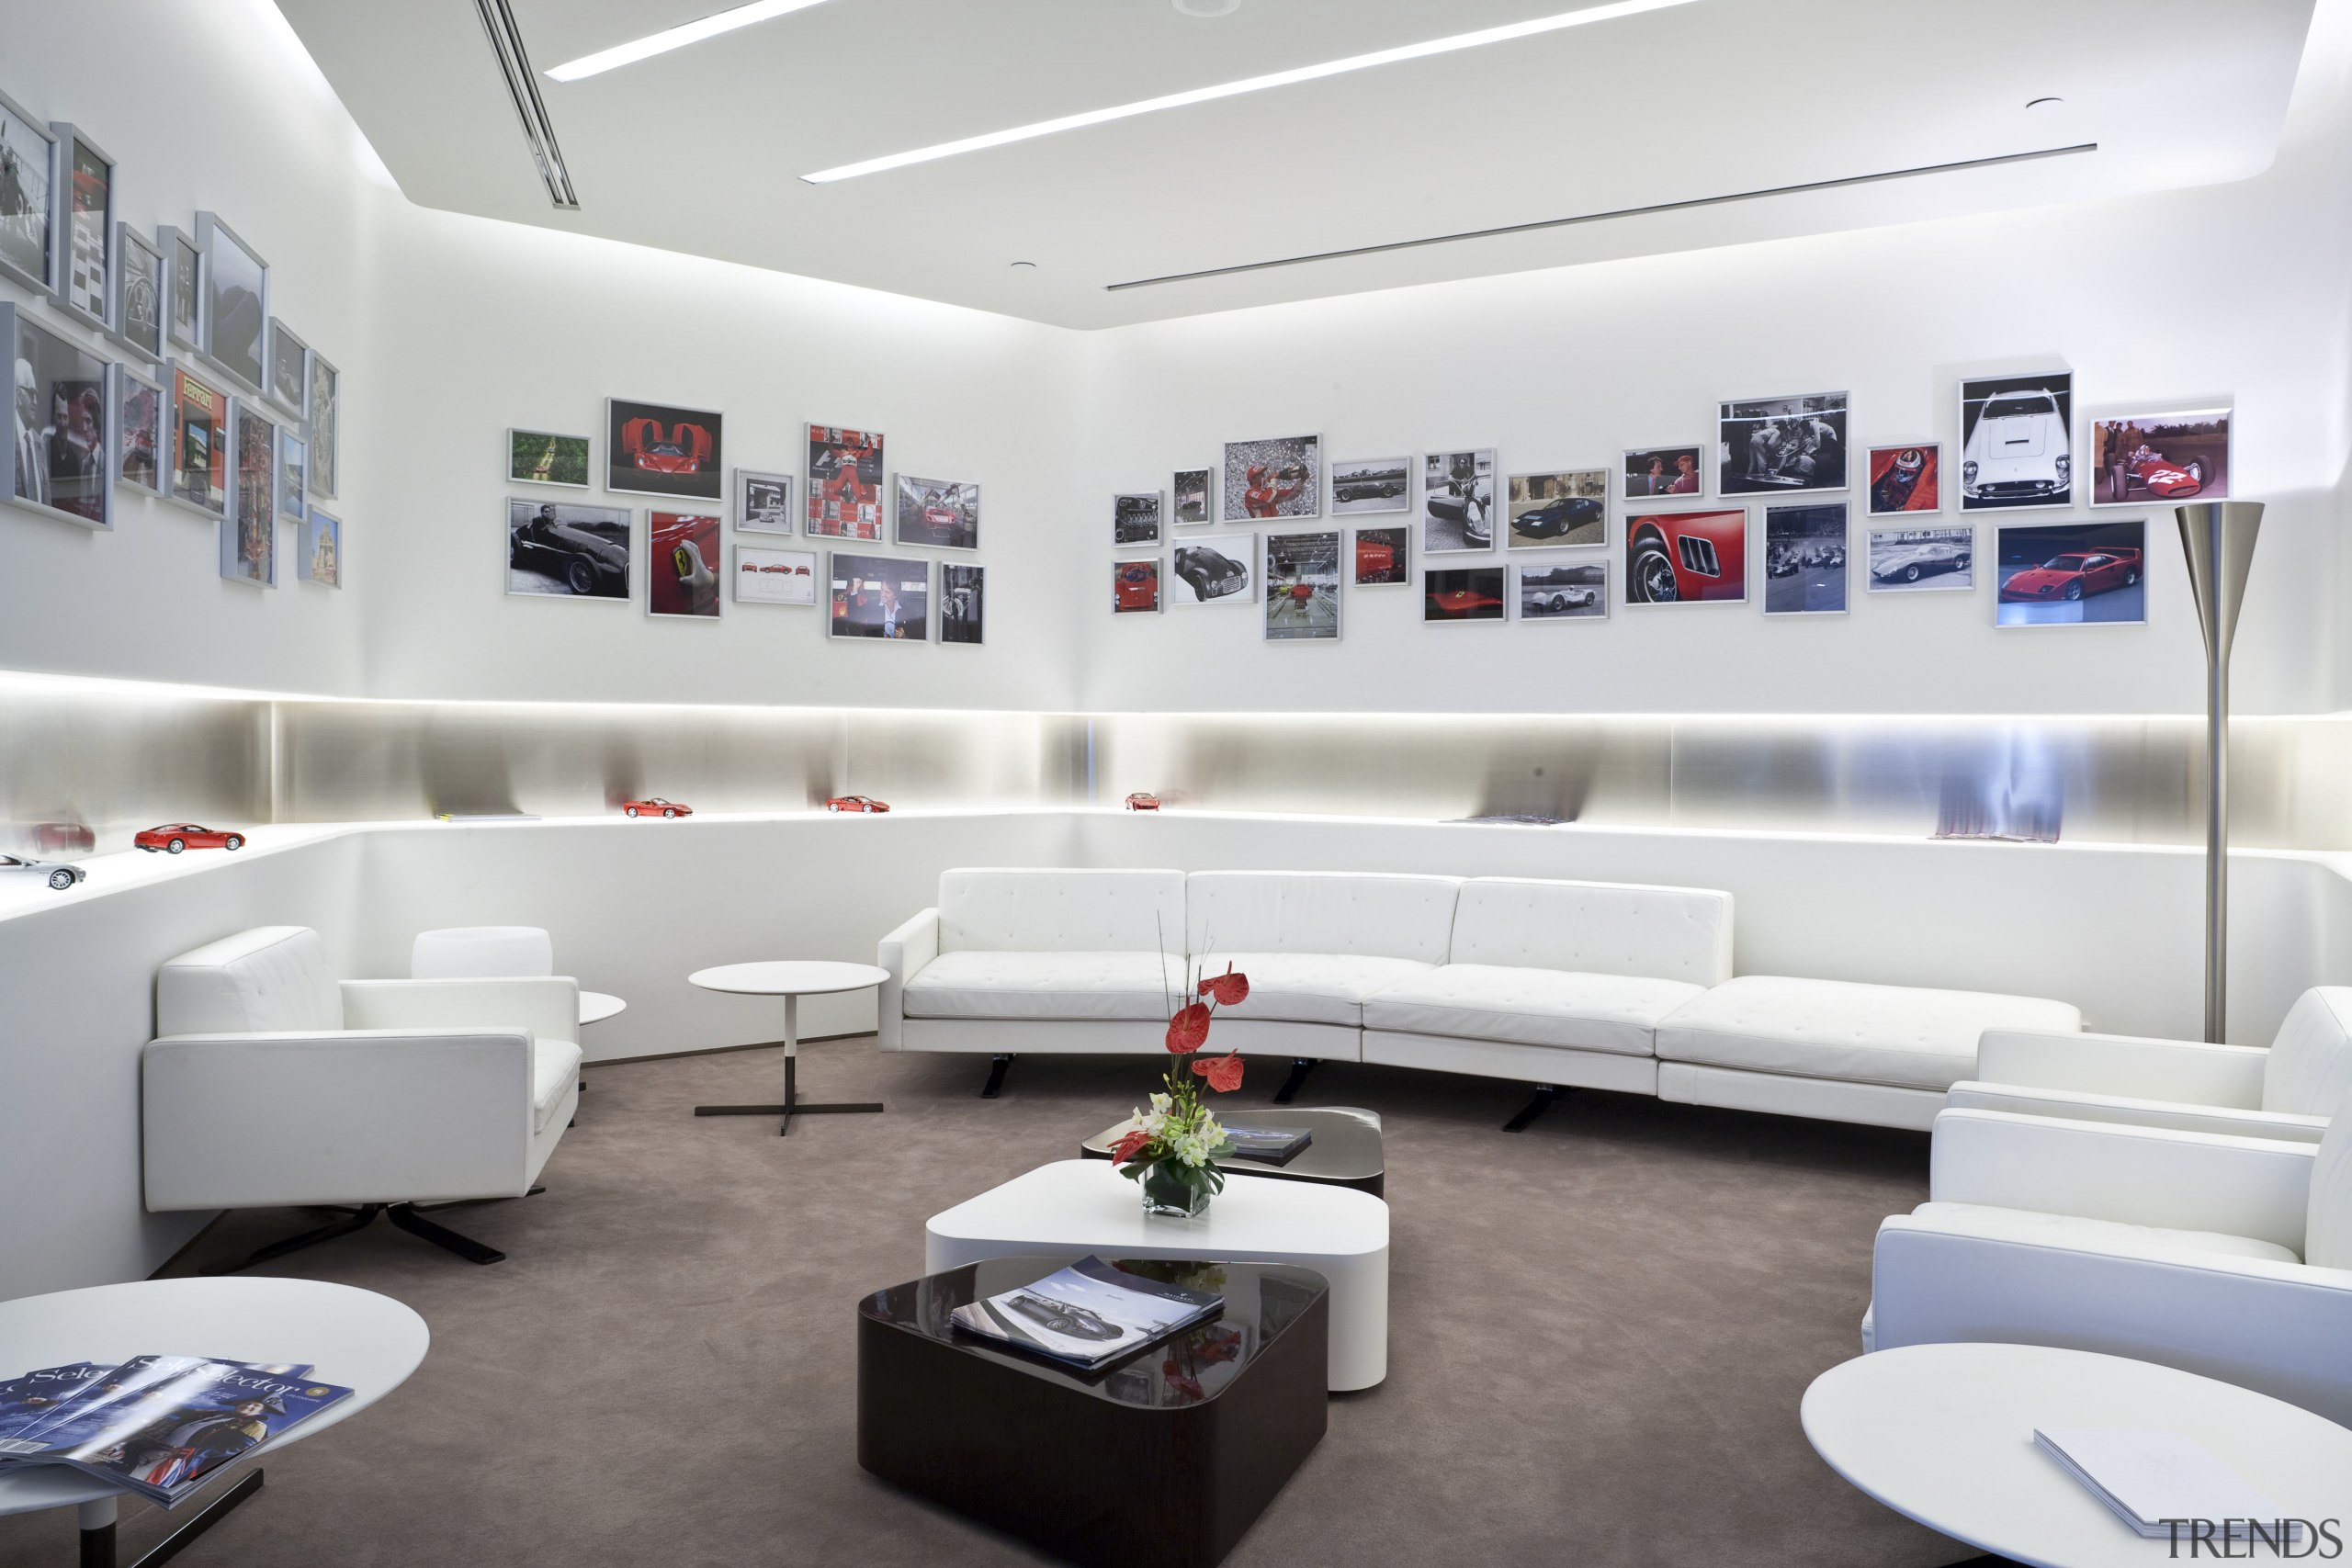 Ferrari Showroom in Australia - Ferrari Showroom in furniture, interior design, living room, product design, white, gray